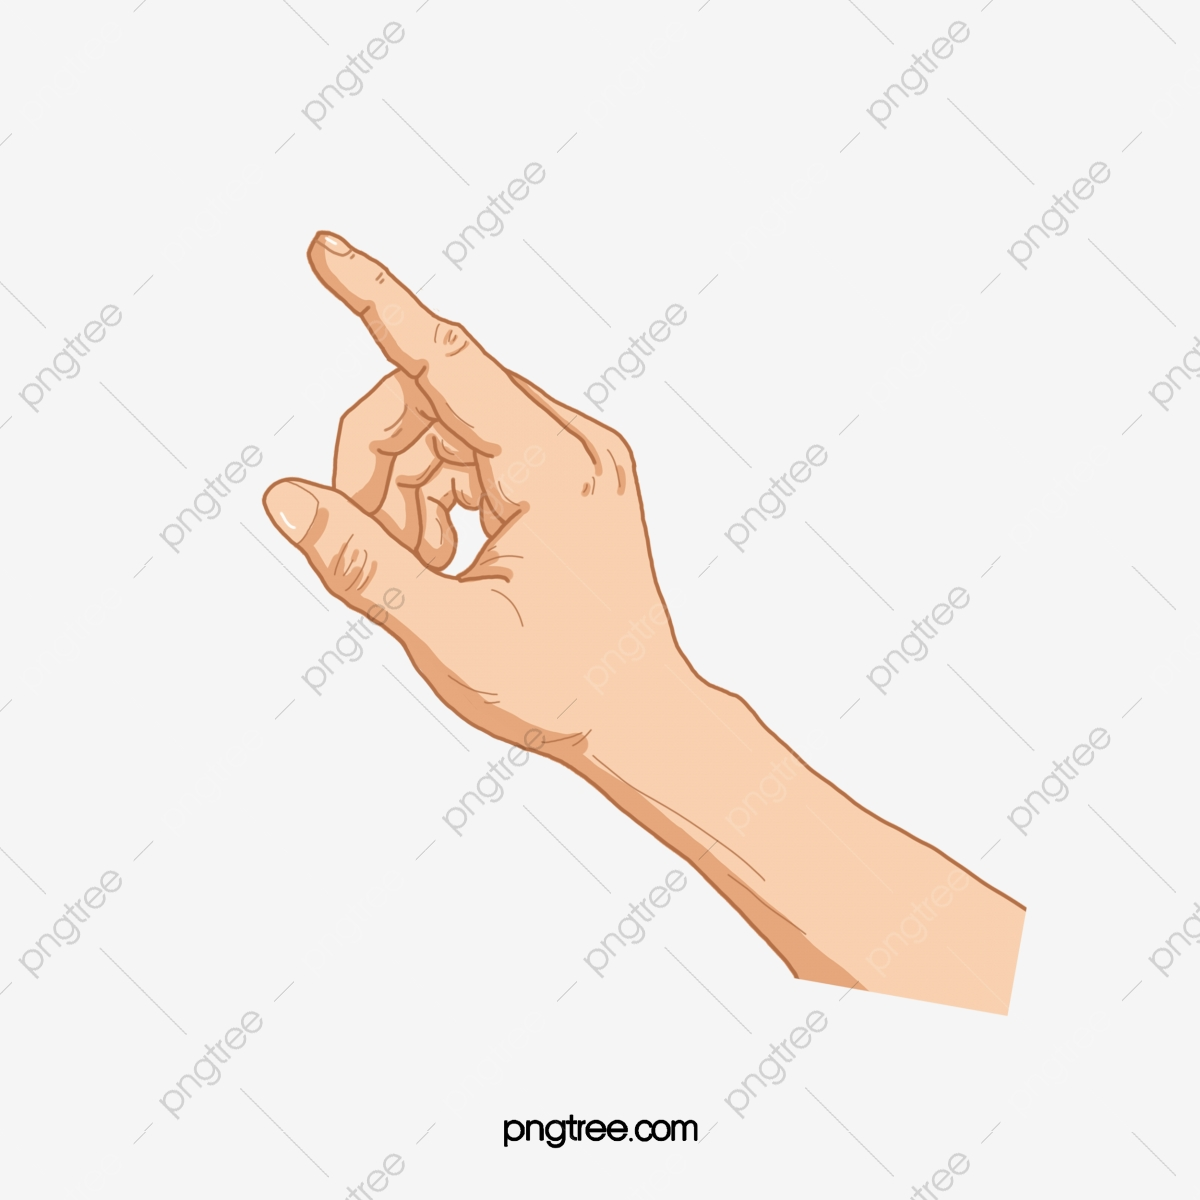 Fingers clipart fan finger. Pointing hand action gesture